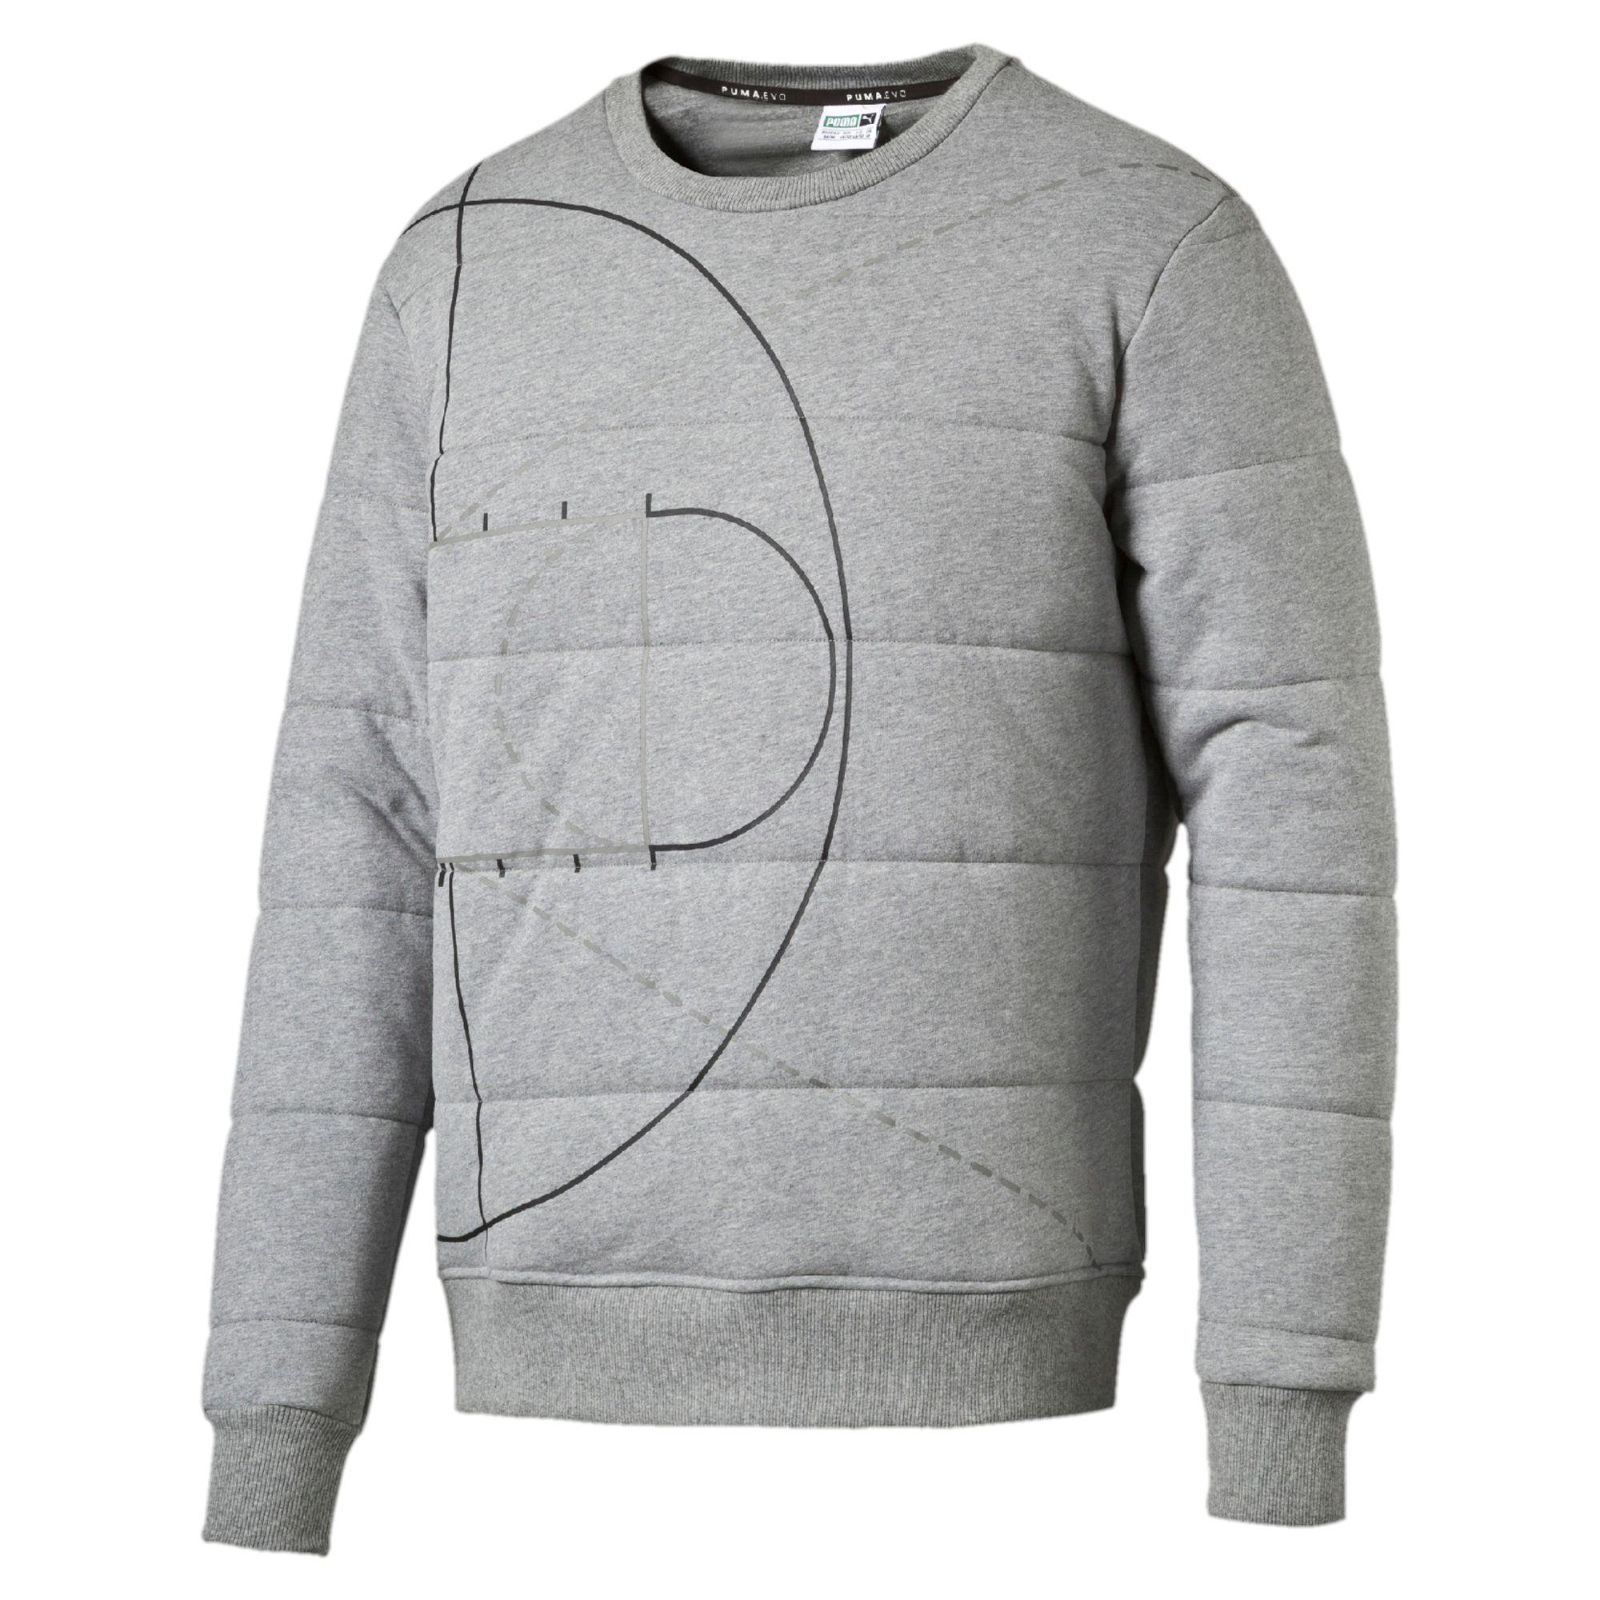 60% OFF   PUMA Evo Graphic Padded Sweatshirt / L & XL /   / Stunning